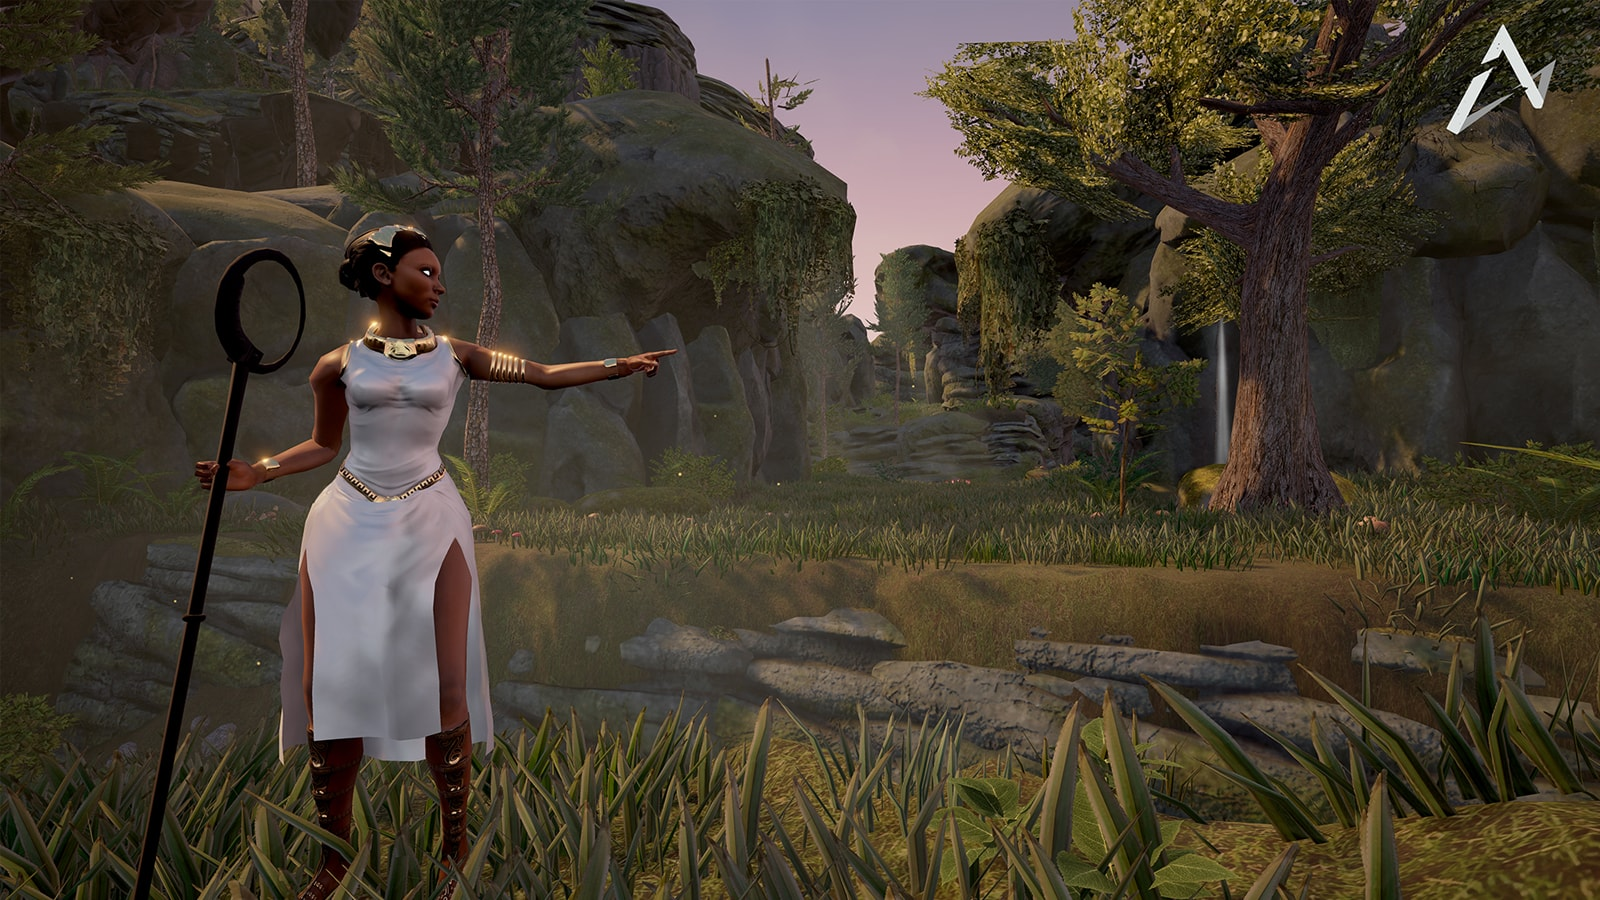 A woman wearing a flowing white dress with golden jewelry holds a staff and points down a sylvan pathway.